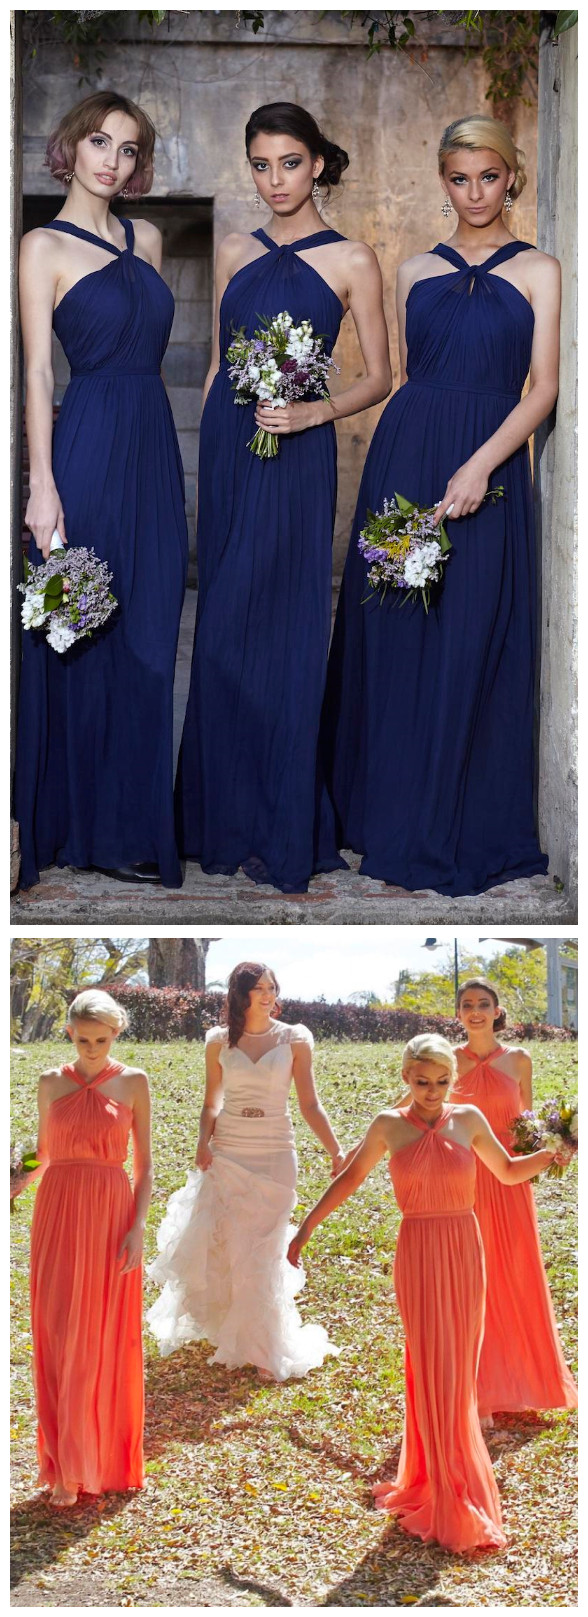 New halter royal blue chiffon bridesmaid dresses under 100 long new halter royal blue chiffon bridesmaid dresses under 100 long chiffon full length bridesmaids maid of ombrellifo Images